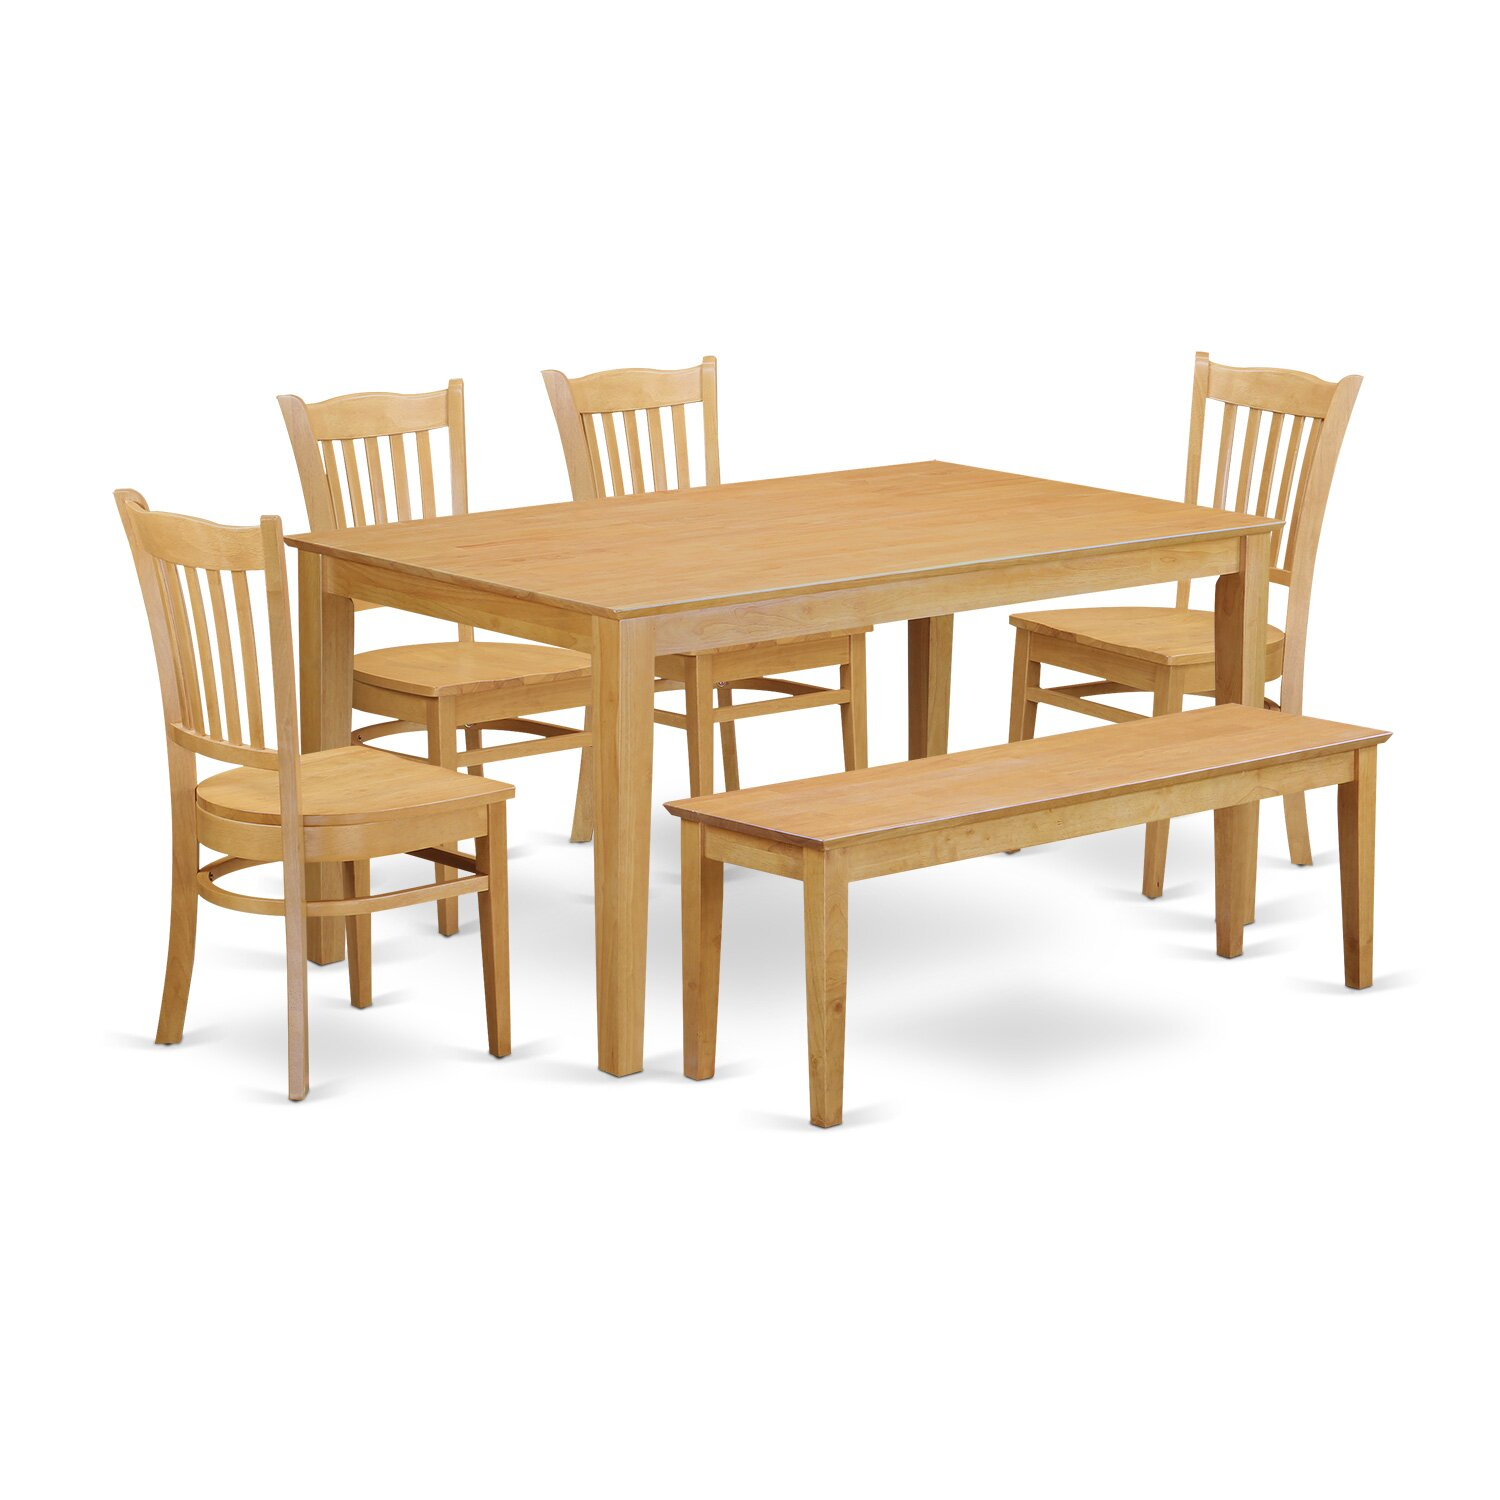 Bench Set Dining Table And 4 Kitchen Chairs And Bench CAGR6 OAK W.jpg. Full resolution‎  img, nominally Width 1500 Height 1500 pixels, img with #421E09.